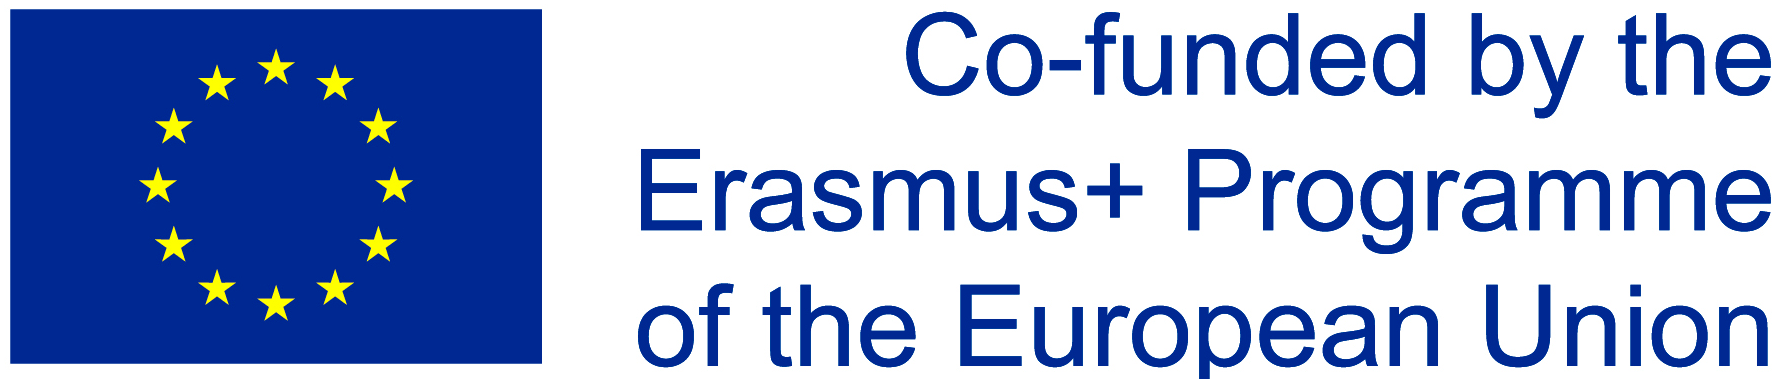 Co-founded by the Erasmus+ programme